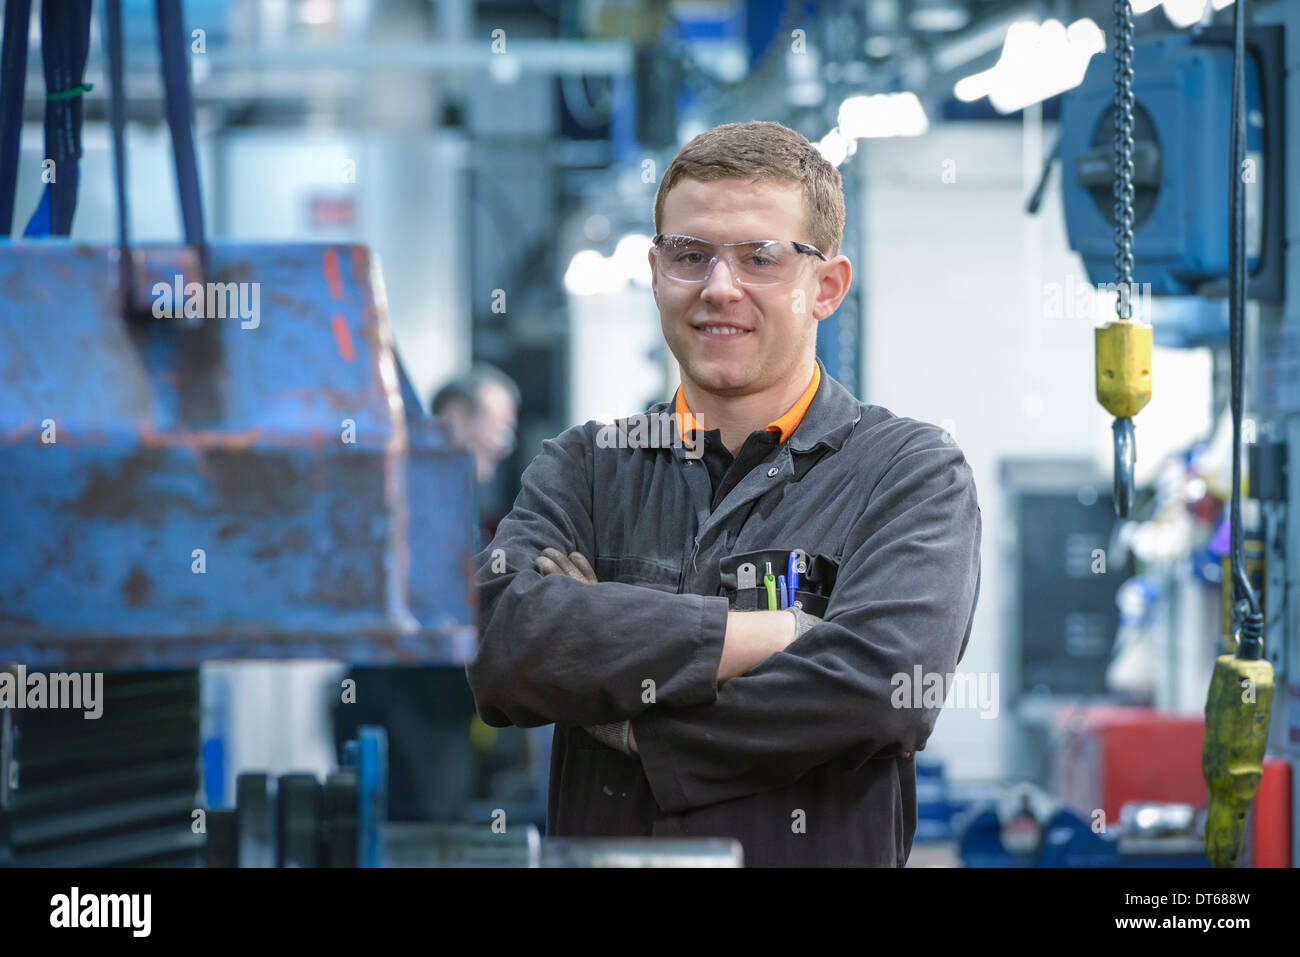 Portrait of engineering apprentice in engineering factory, smiling - Stock Image